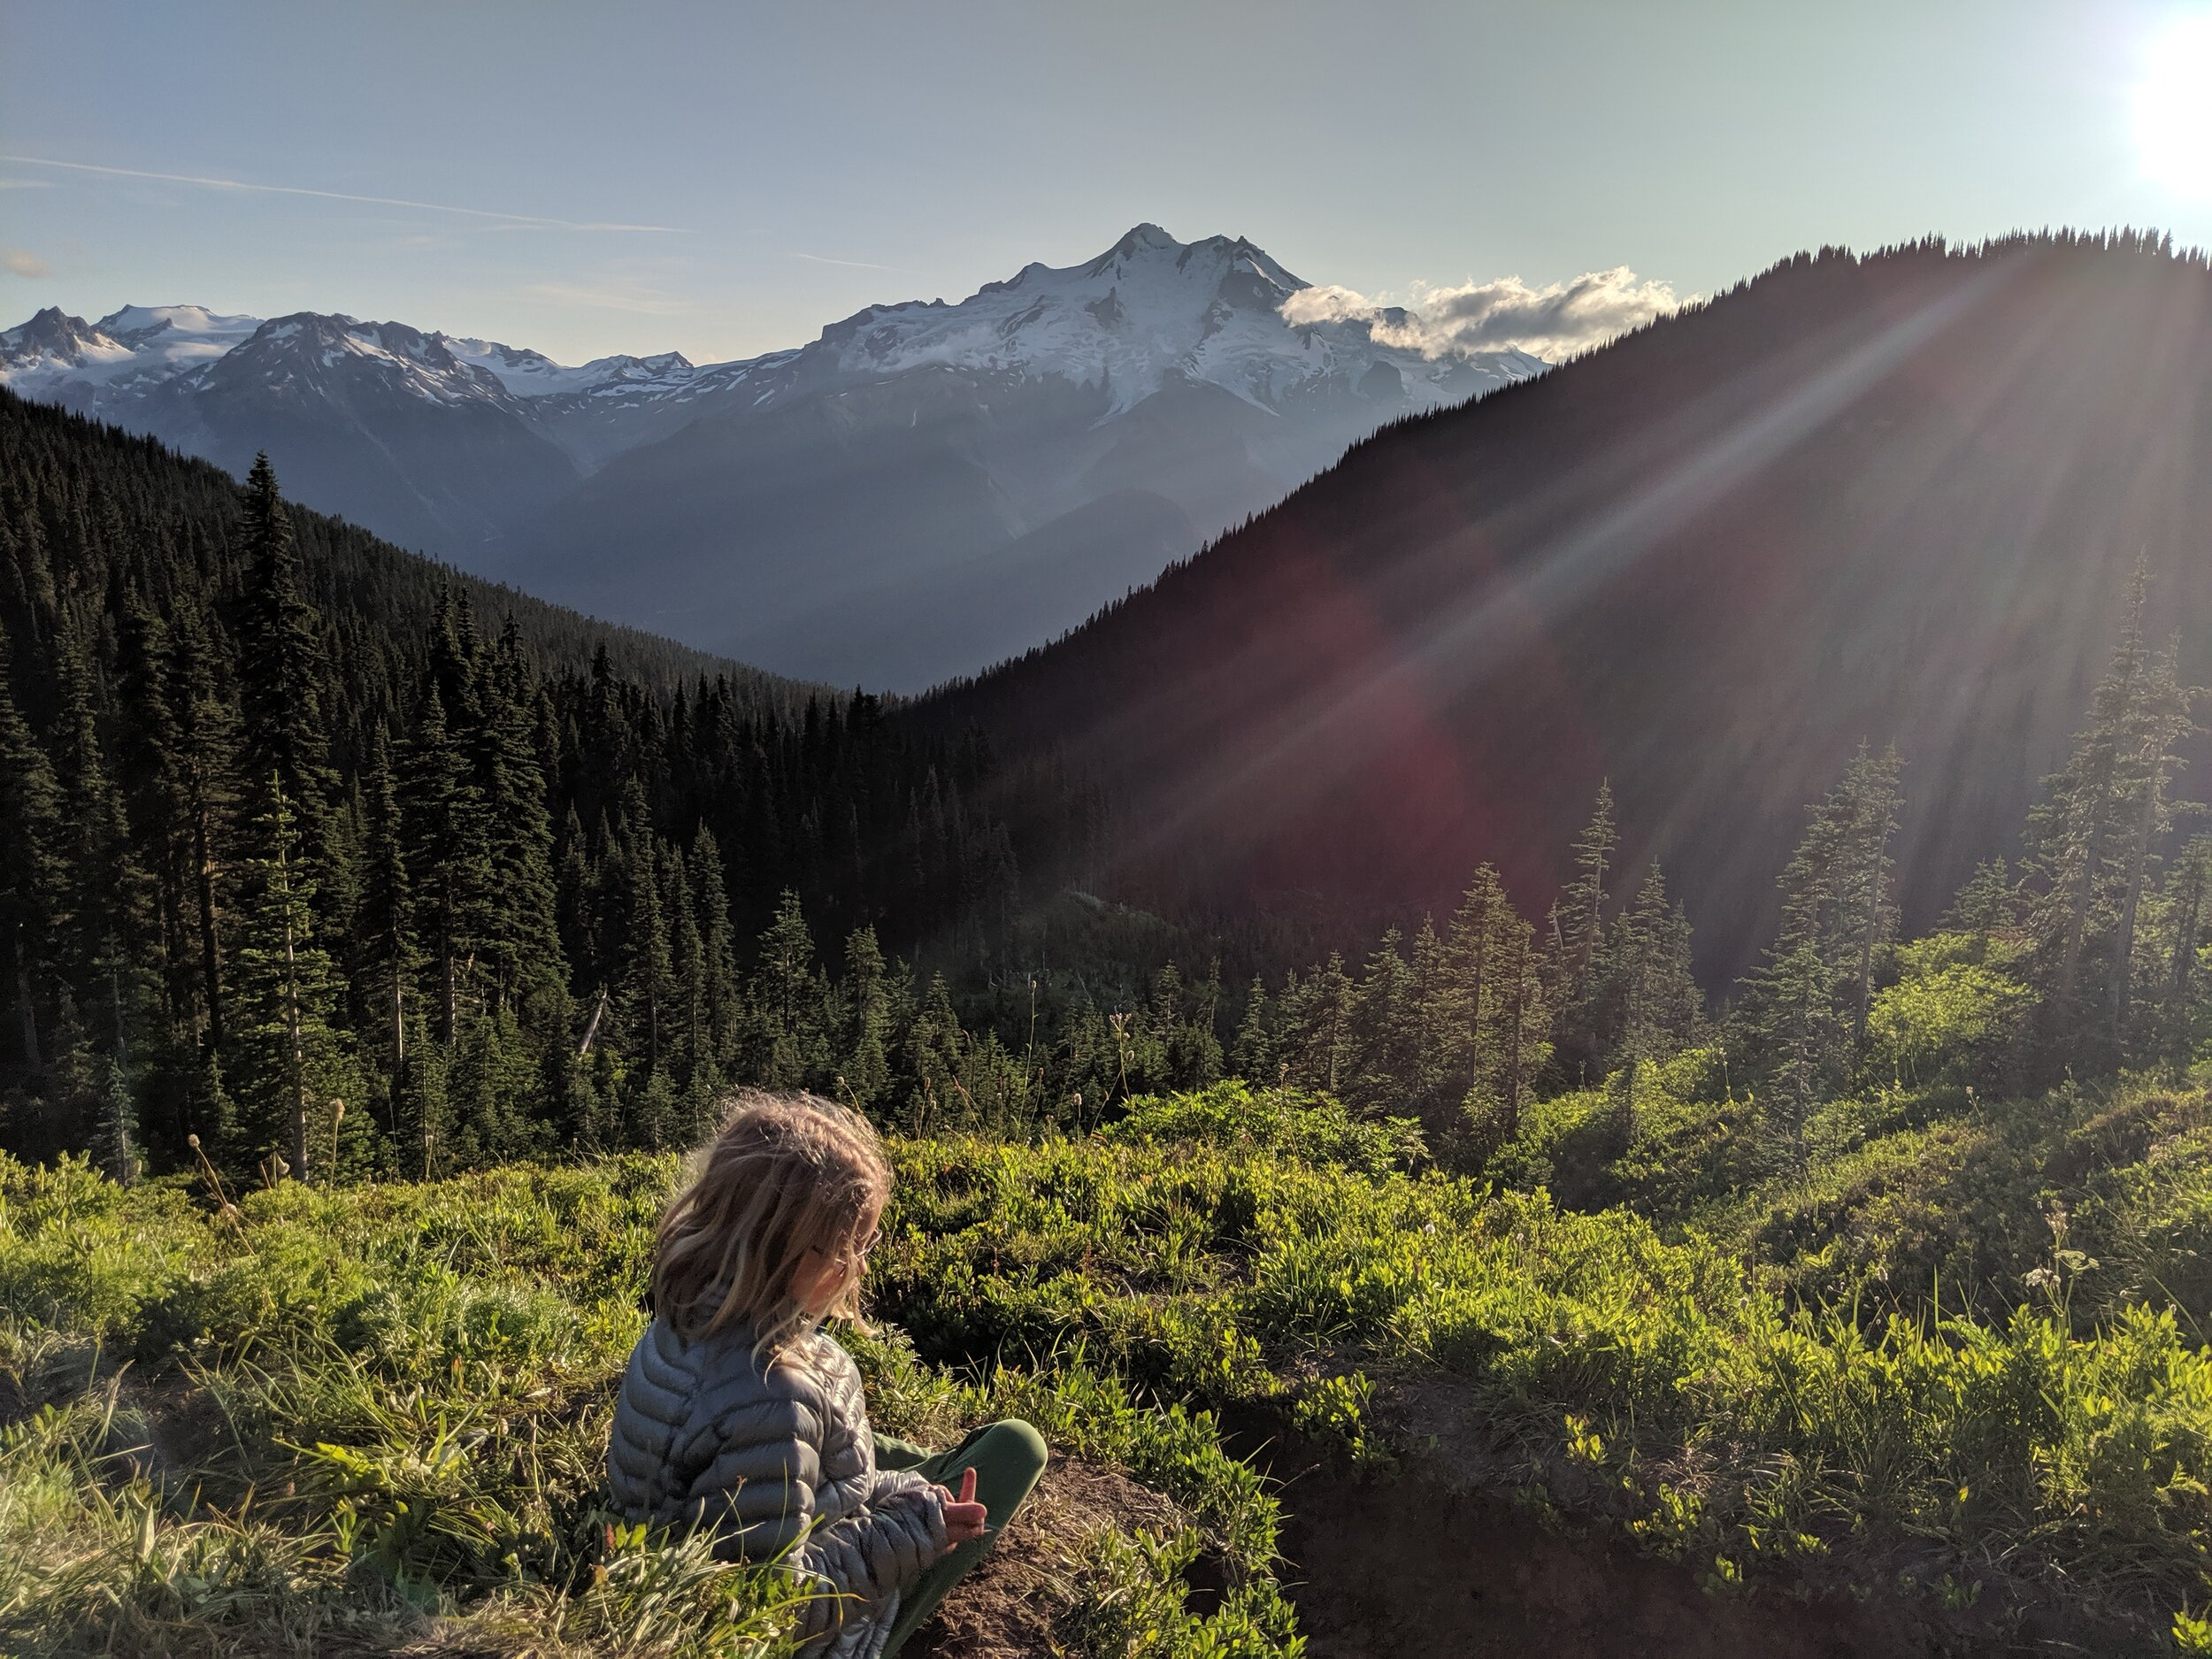 Glacier Peak at sunset. Though Rowan appears to be giving me the finger, she is whittling a stick with her Swiss Army knife.